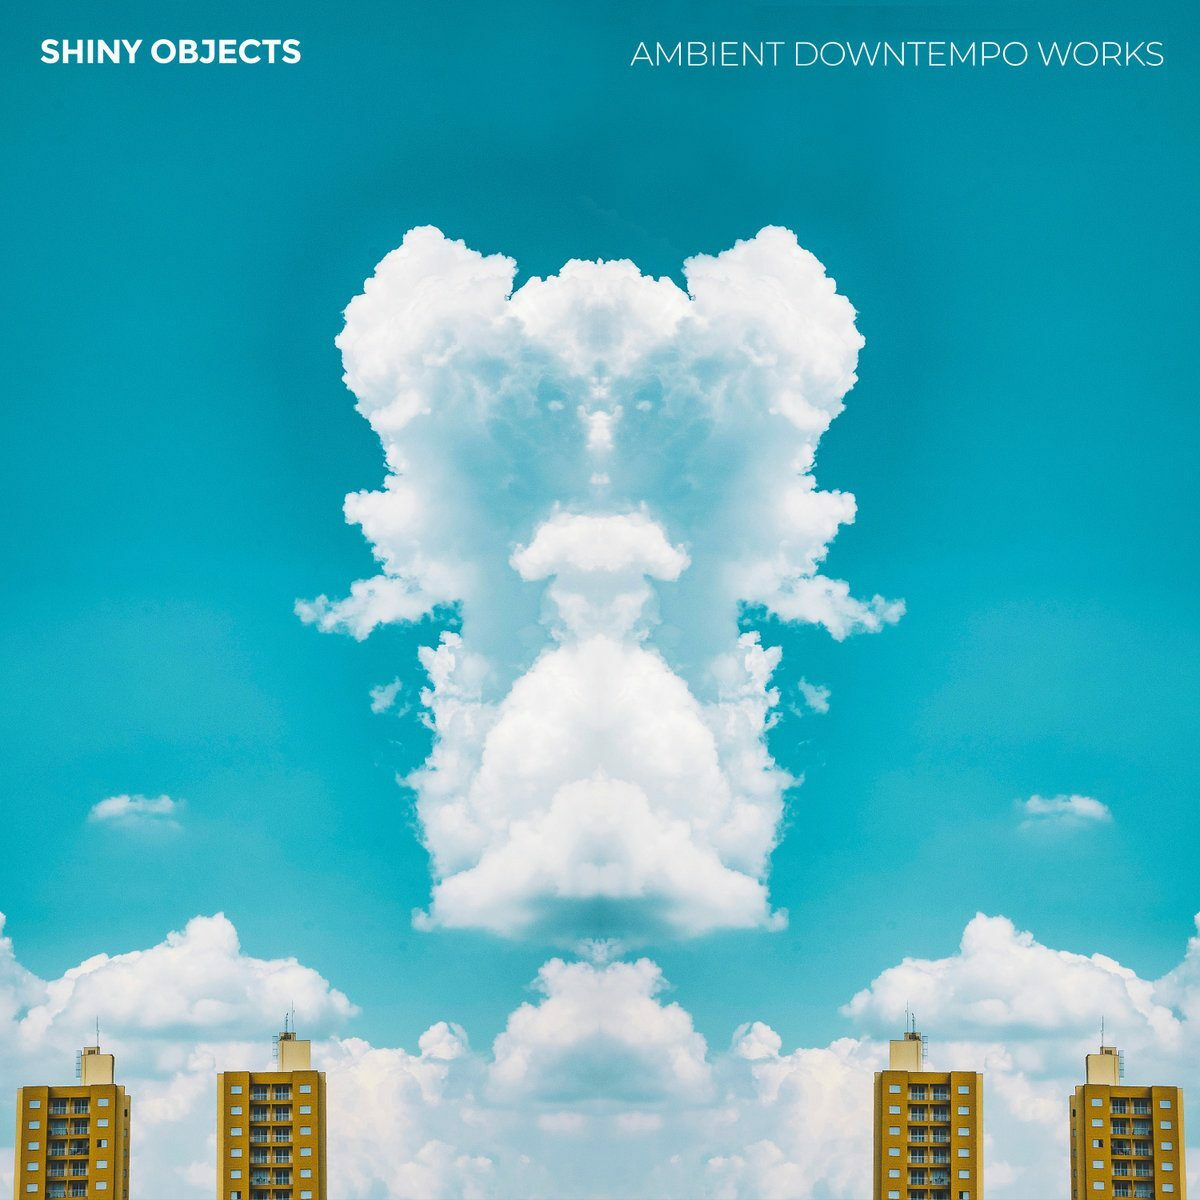 Shiny Objects — Ambient Downtempo Works (OM Records, 2020)